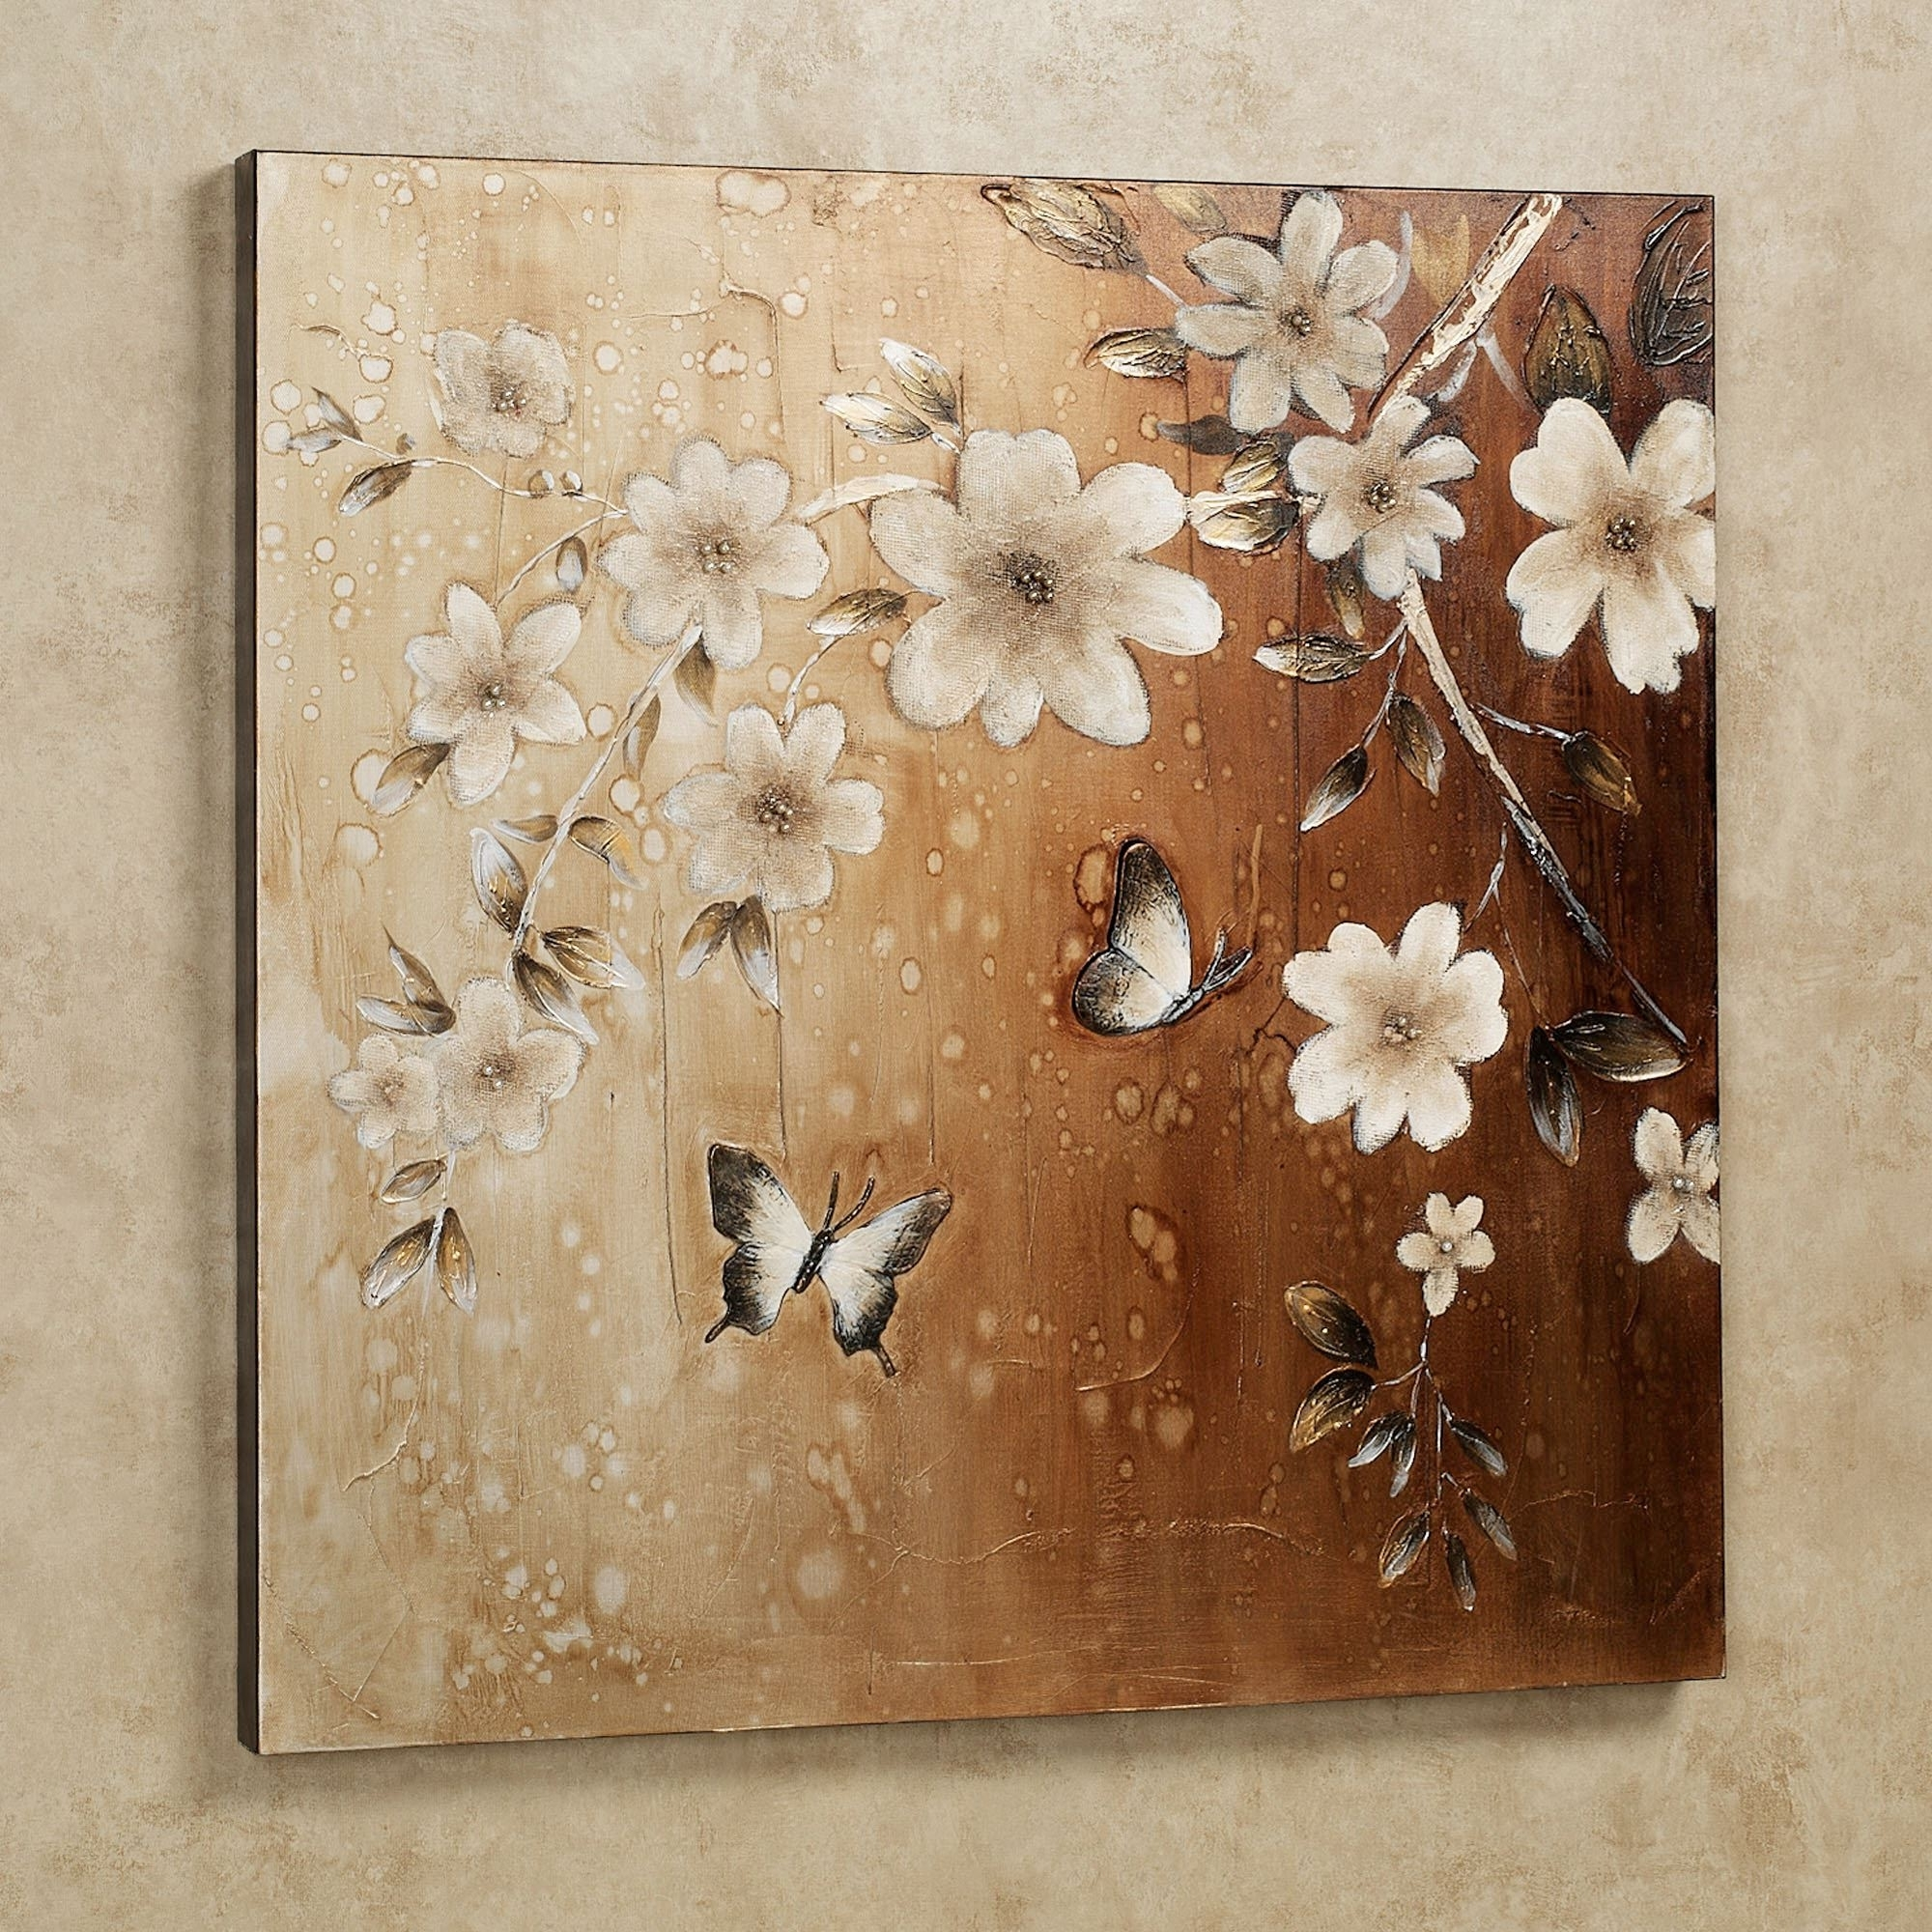 Floral Wall Art Canvas Throughout Current Wall Art Designs: Floral Canvas Wall Art Midday Sun Canvas Wall (View 6 of 15)